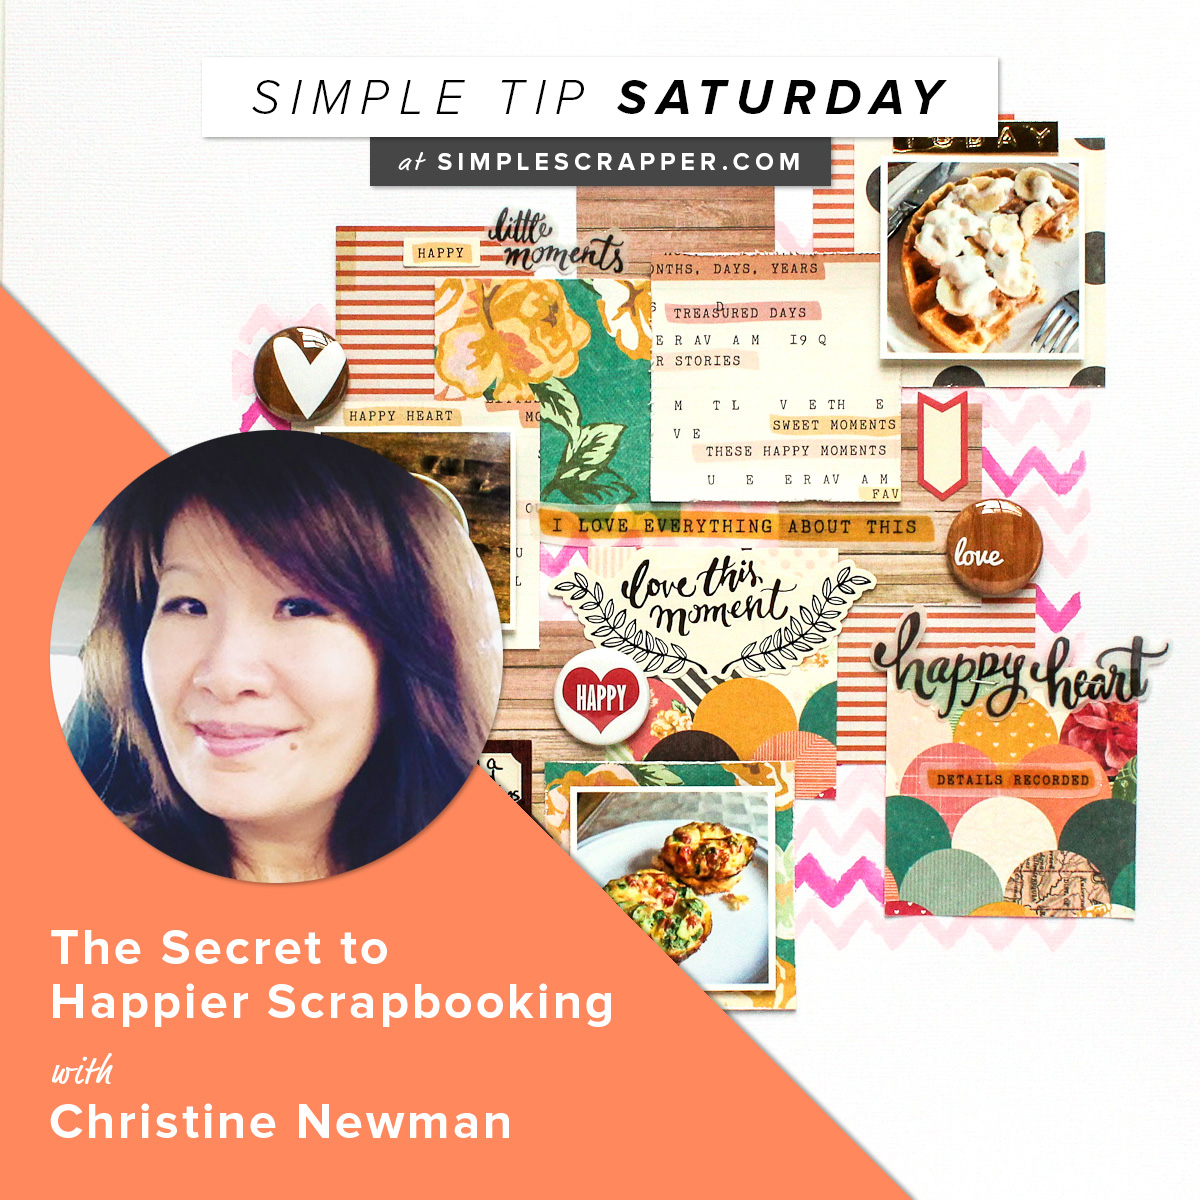 Simple Tip Saturday at Simple Scrapper